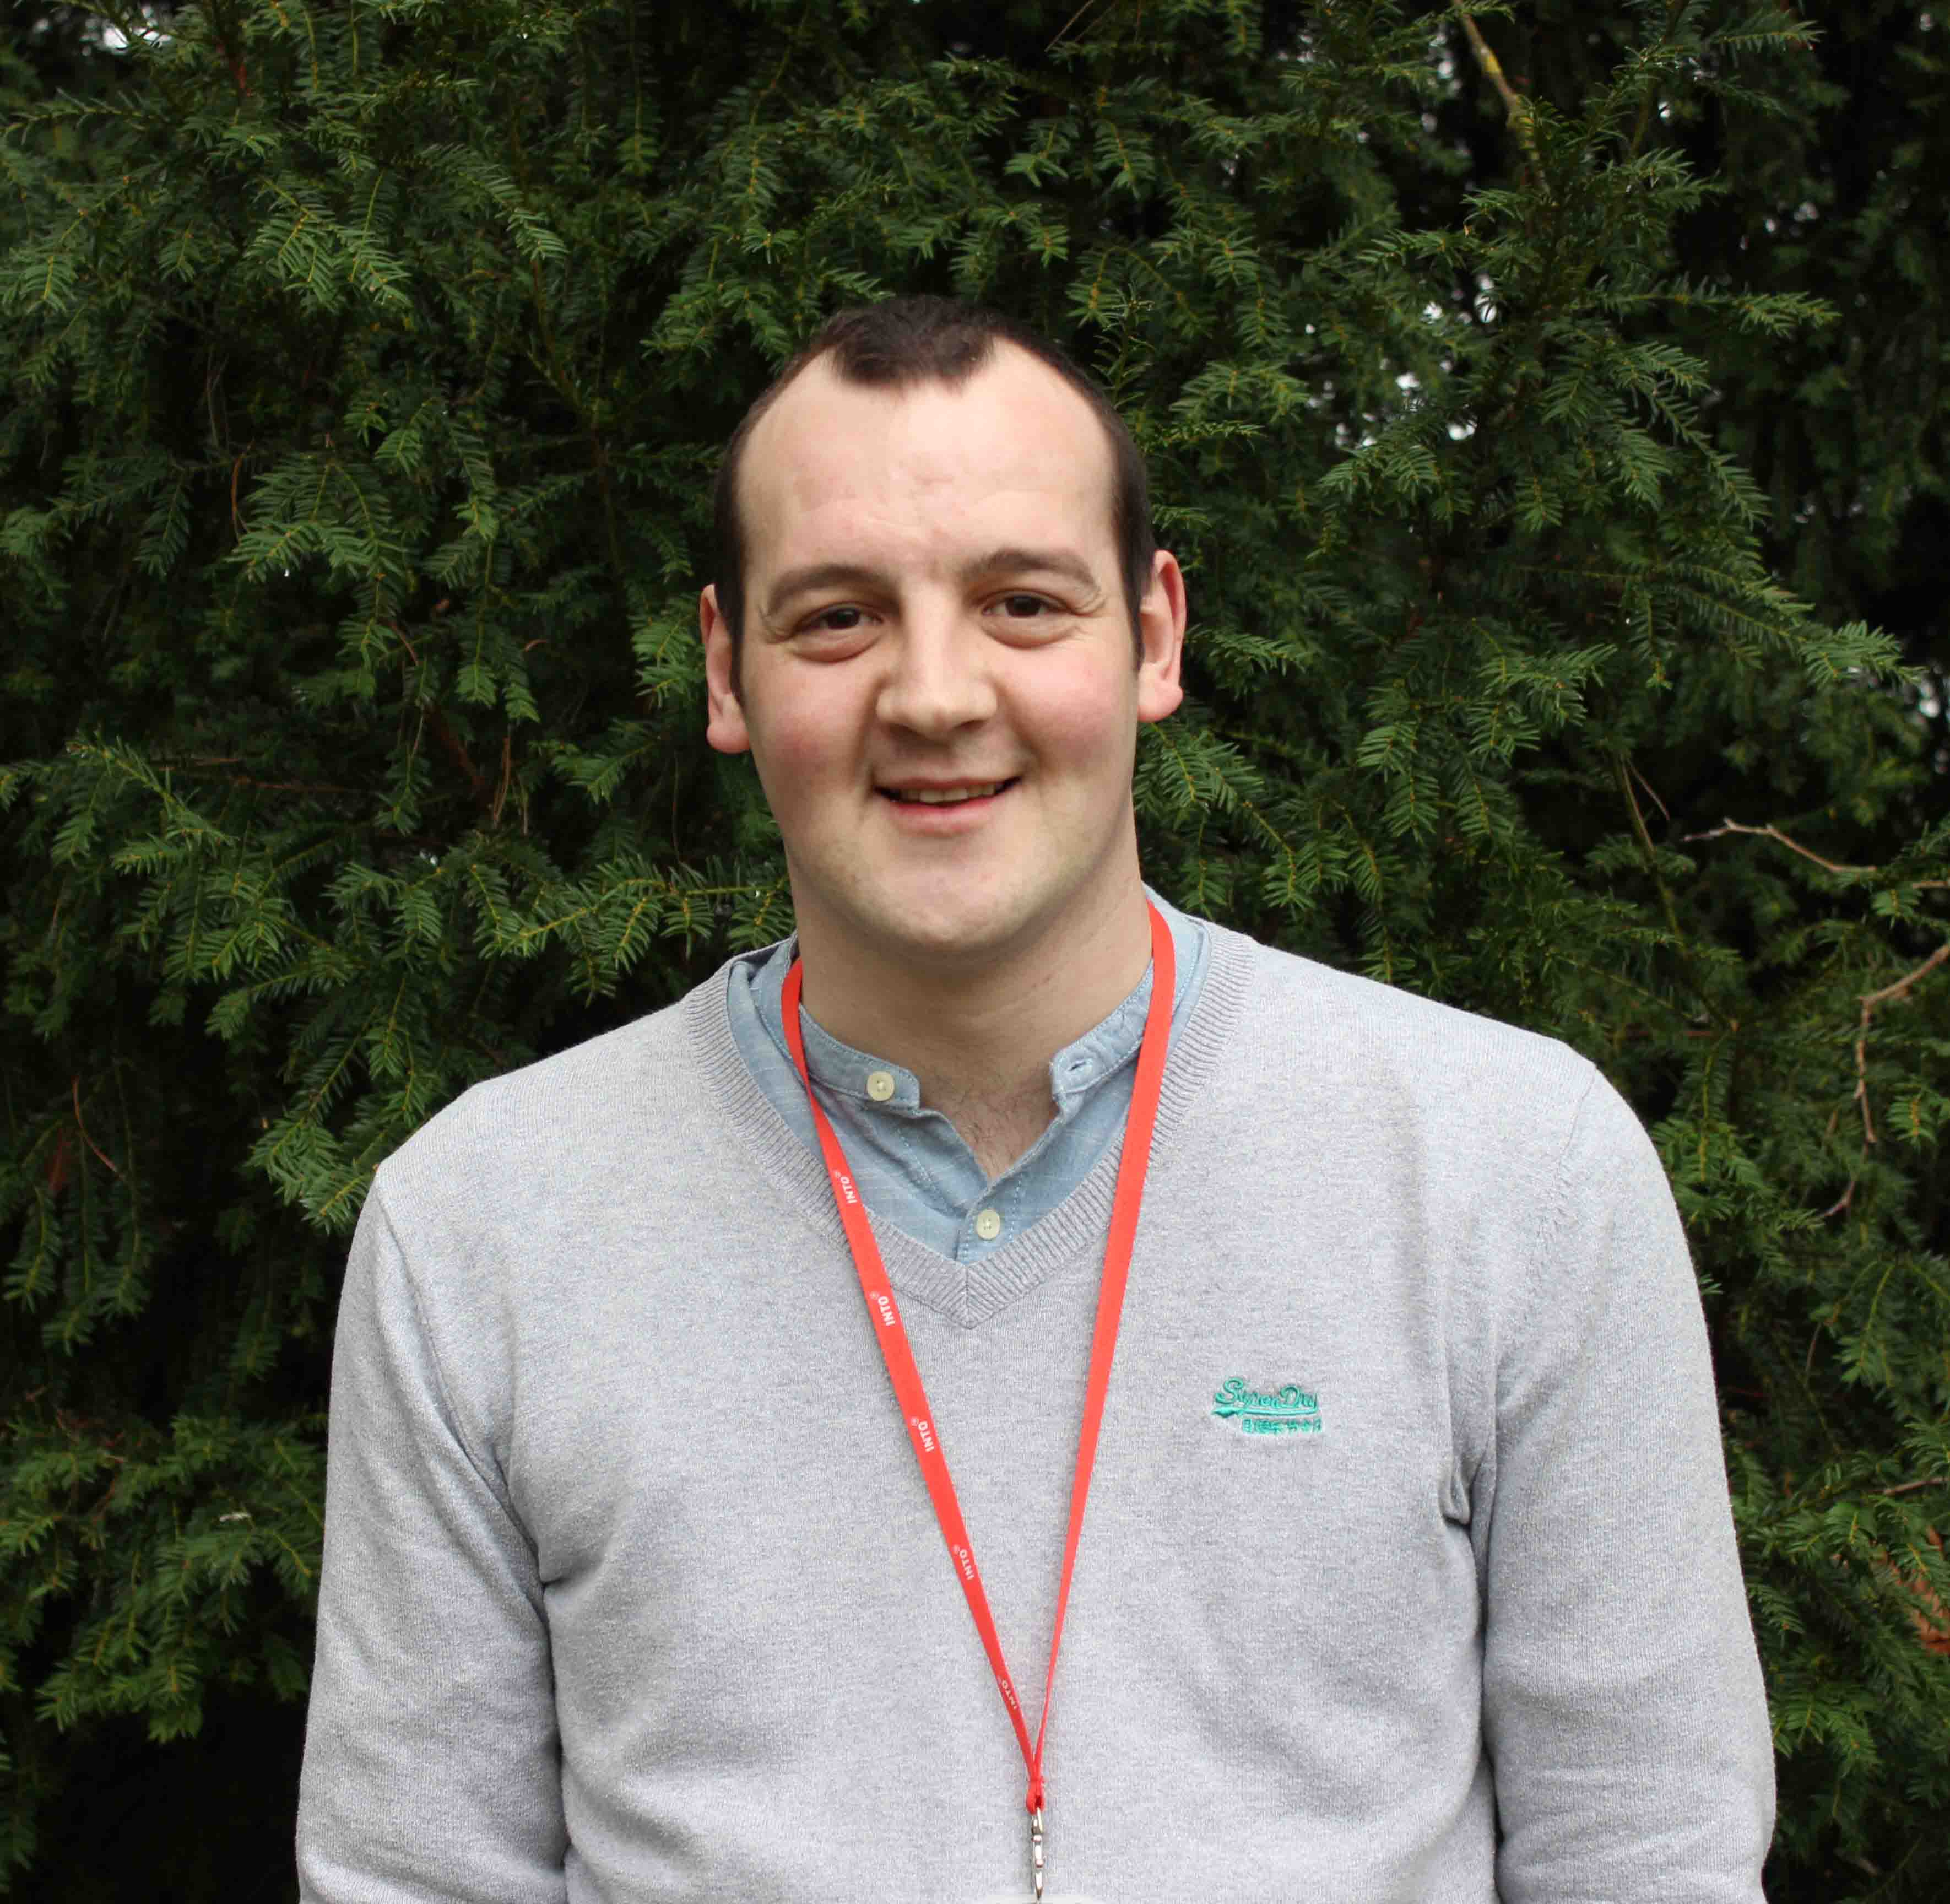 INTO University of Gloucestershire - Kelvin Whitefoot - Student Experience Coordinator